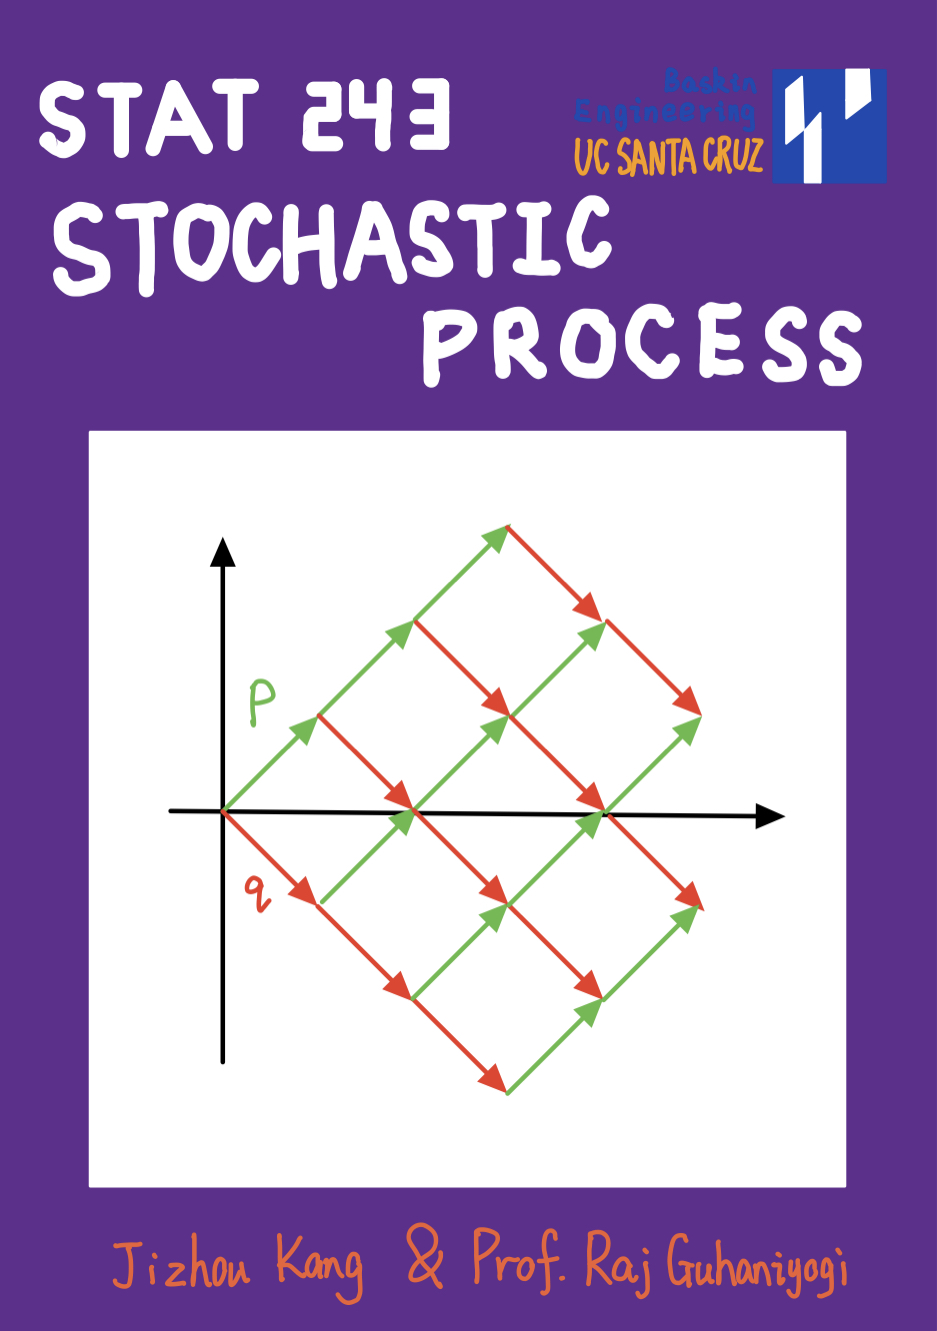 STAT 243: Stochastic Process